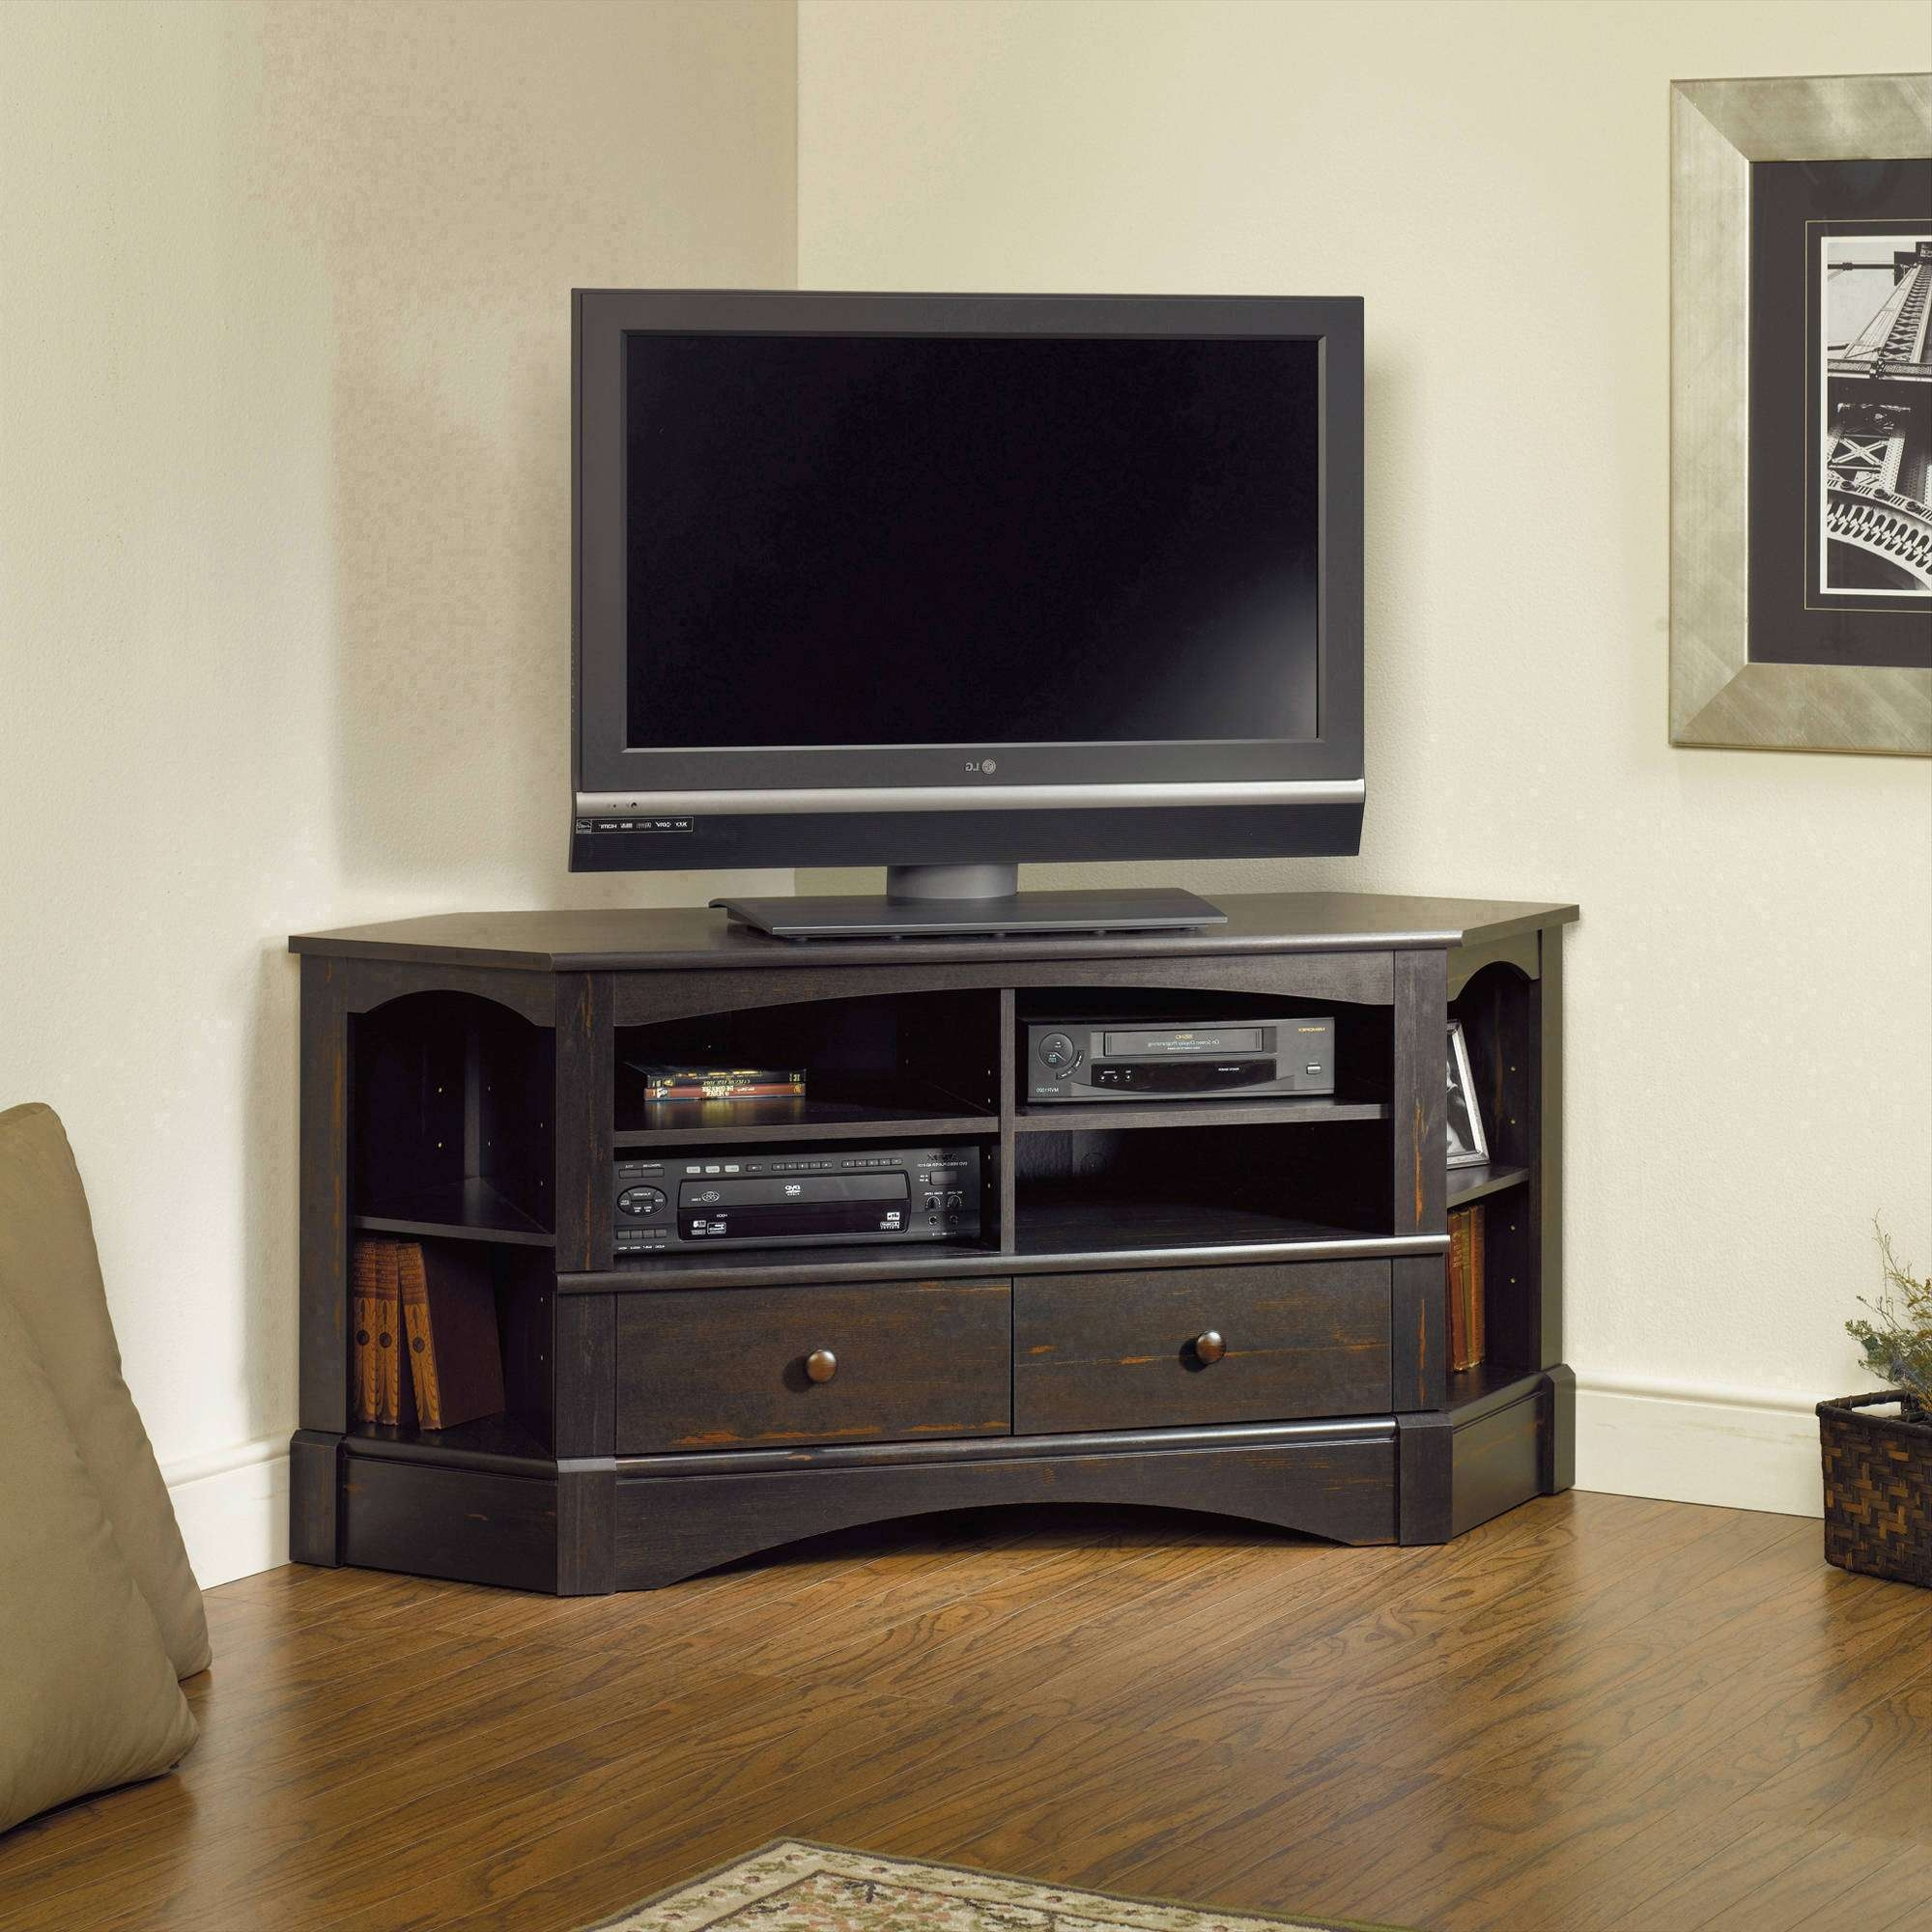 Tv Stand : 32 Unusual 55 Inch Corner Tv Stand With Mount Images In Corner 60 Inch Tv Stands (View 6 of 15)